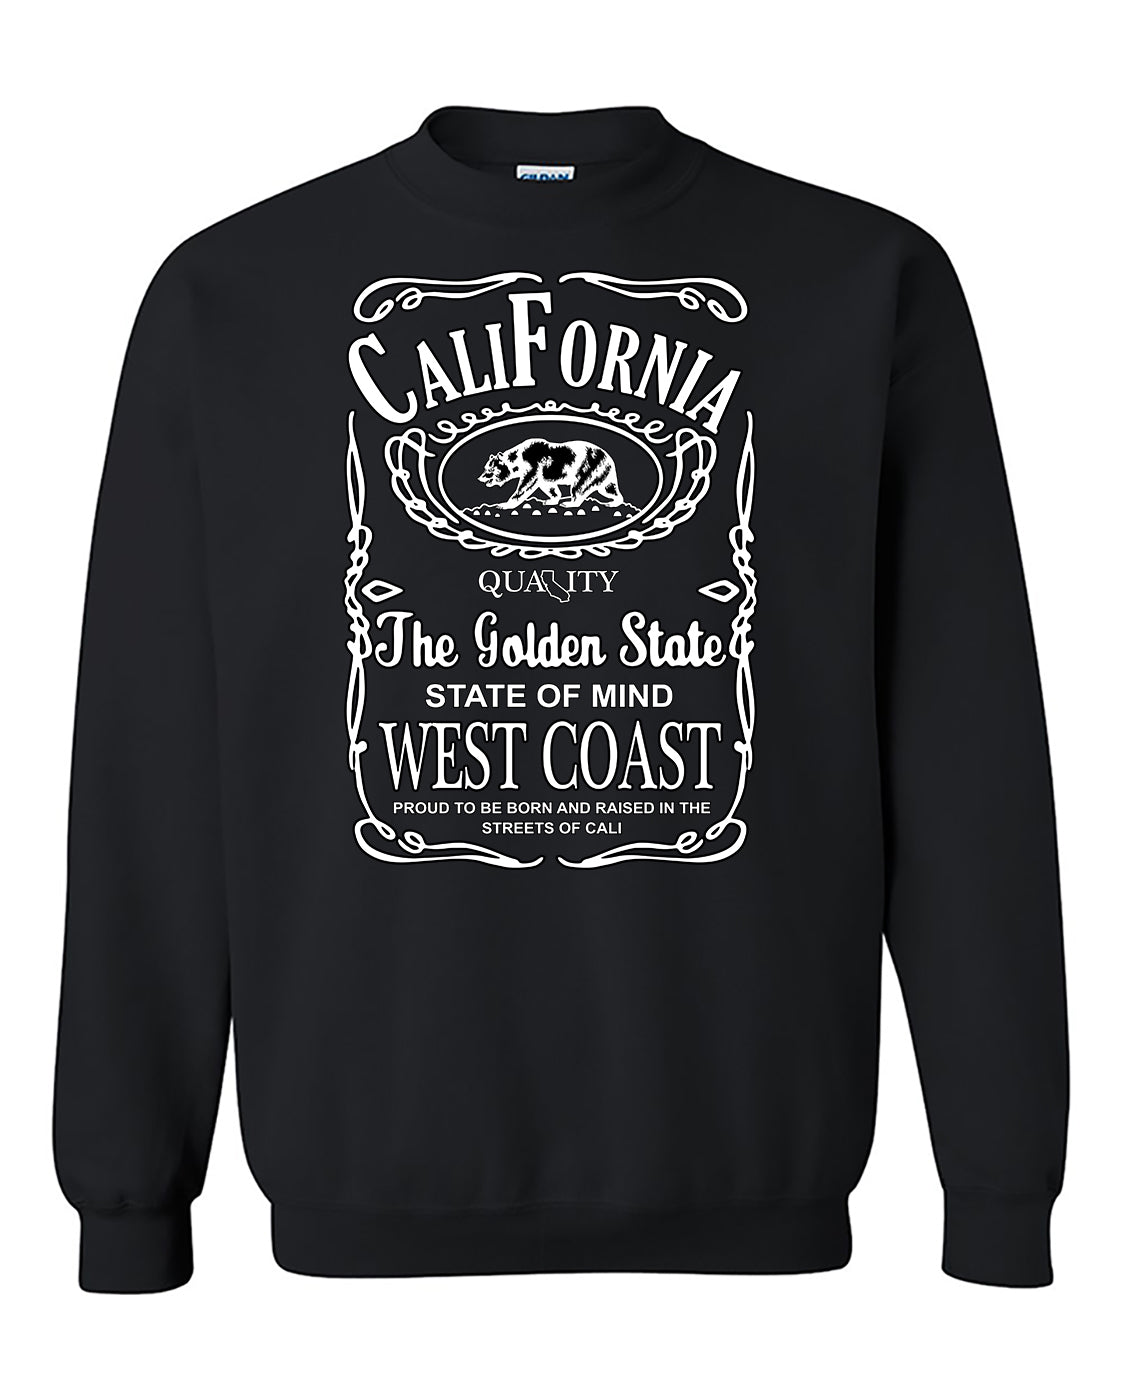 Caliifornia Republic Bear The Golden State West Coast Cali life Crewneck Sweater